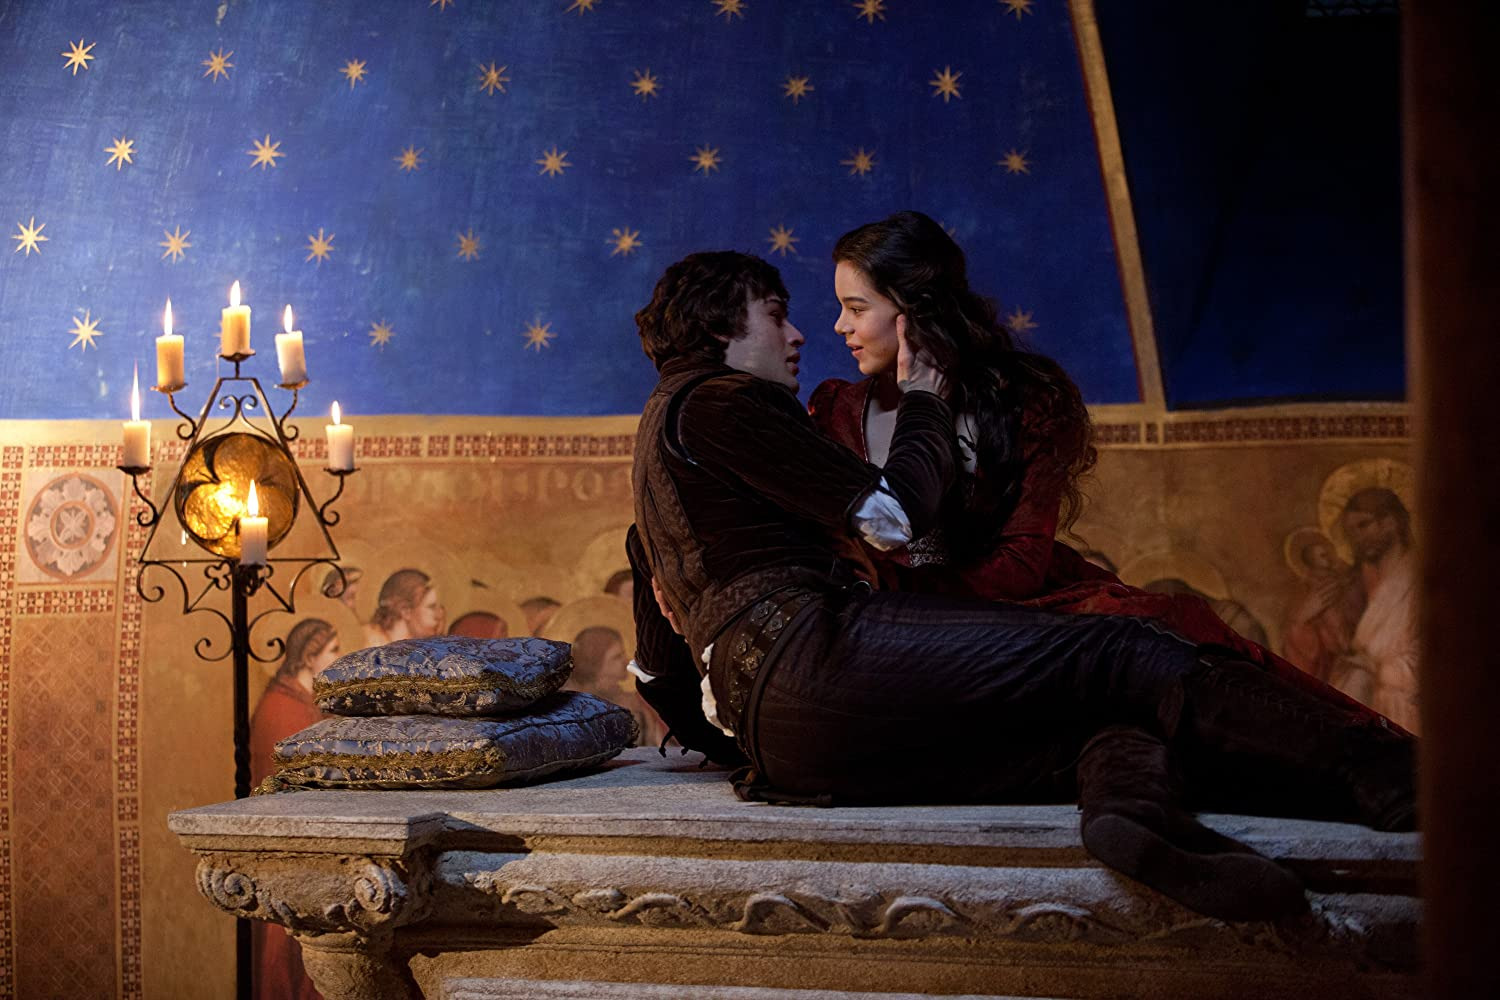 Show Romeo and Juliet